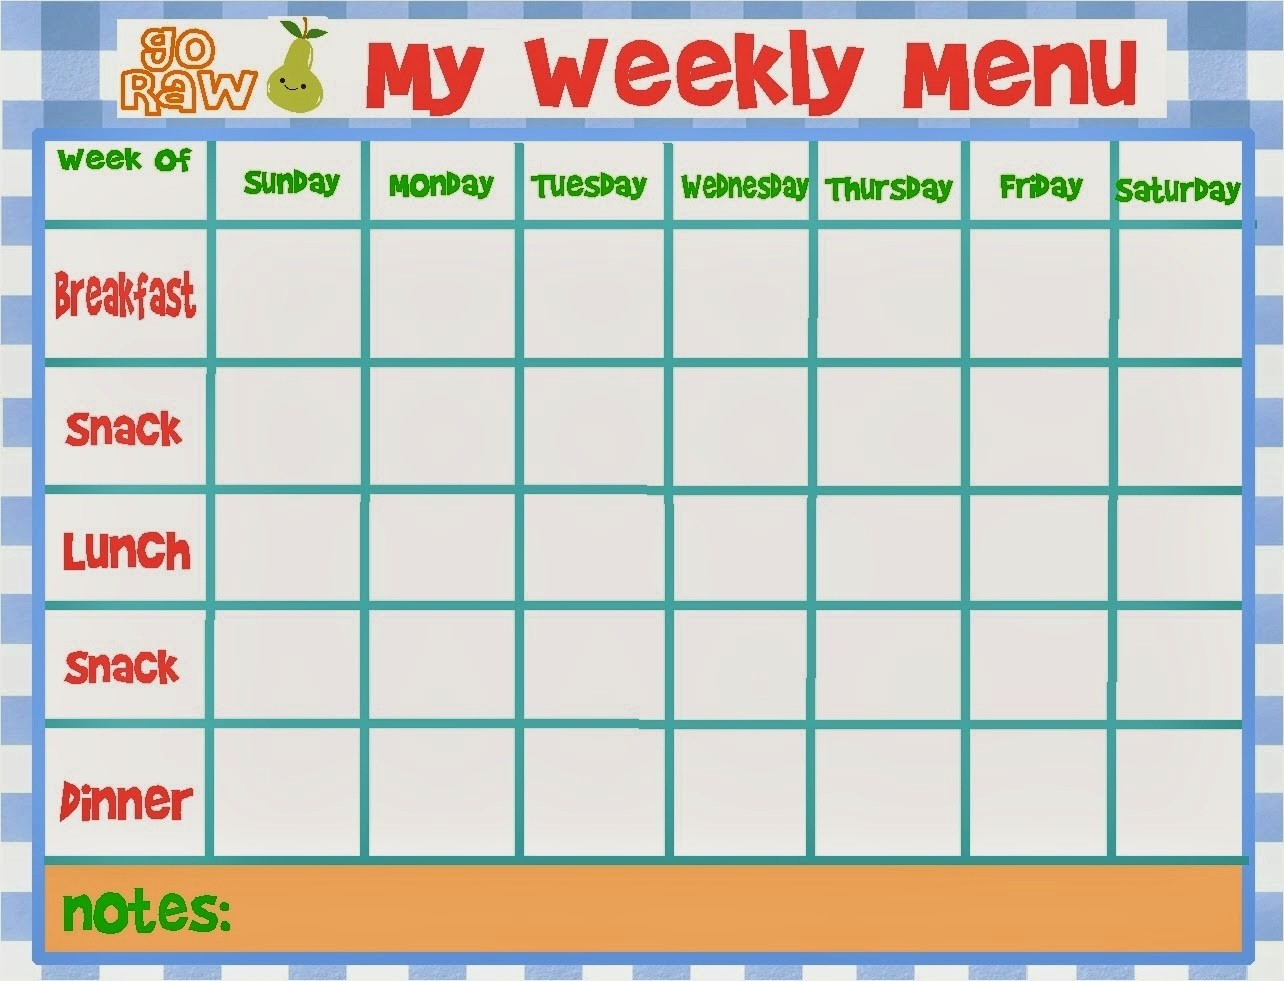 Daycare Menu Templates Free Download Beautiful Weekly Menu Template for Daycare